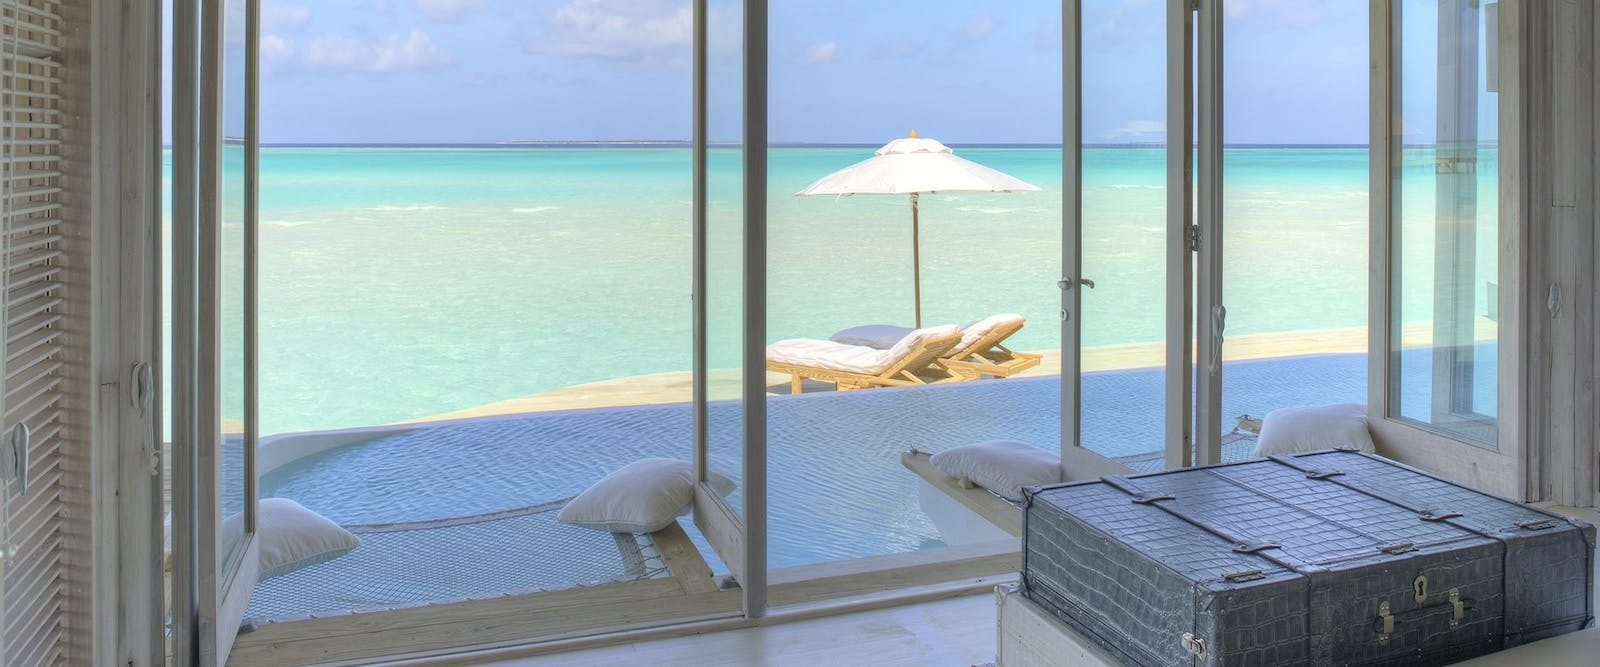 View from Bedroom at Soneva Jani, Maldives, Indian Ocean